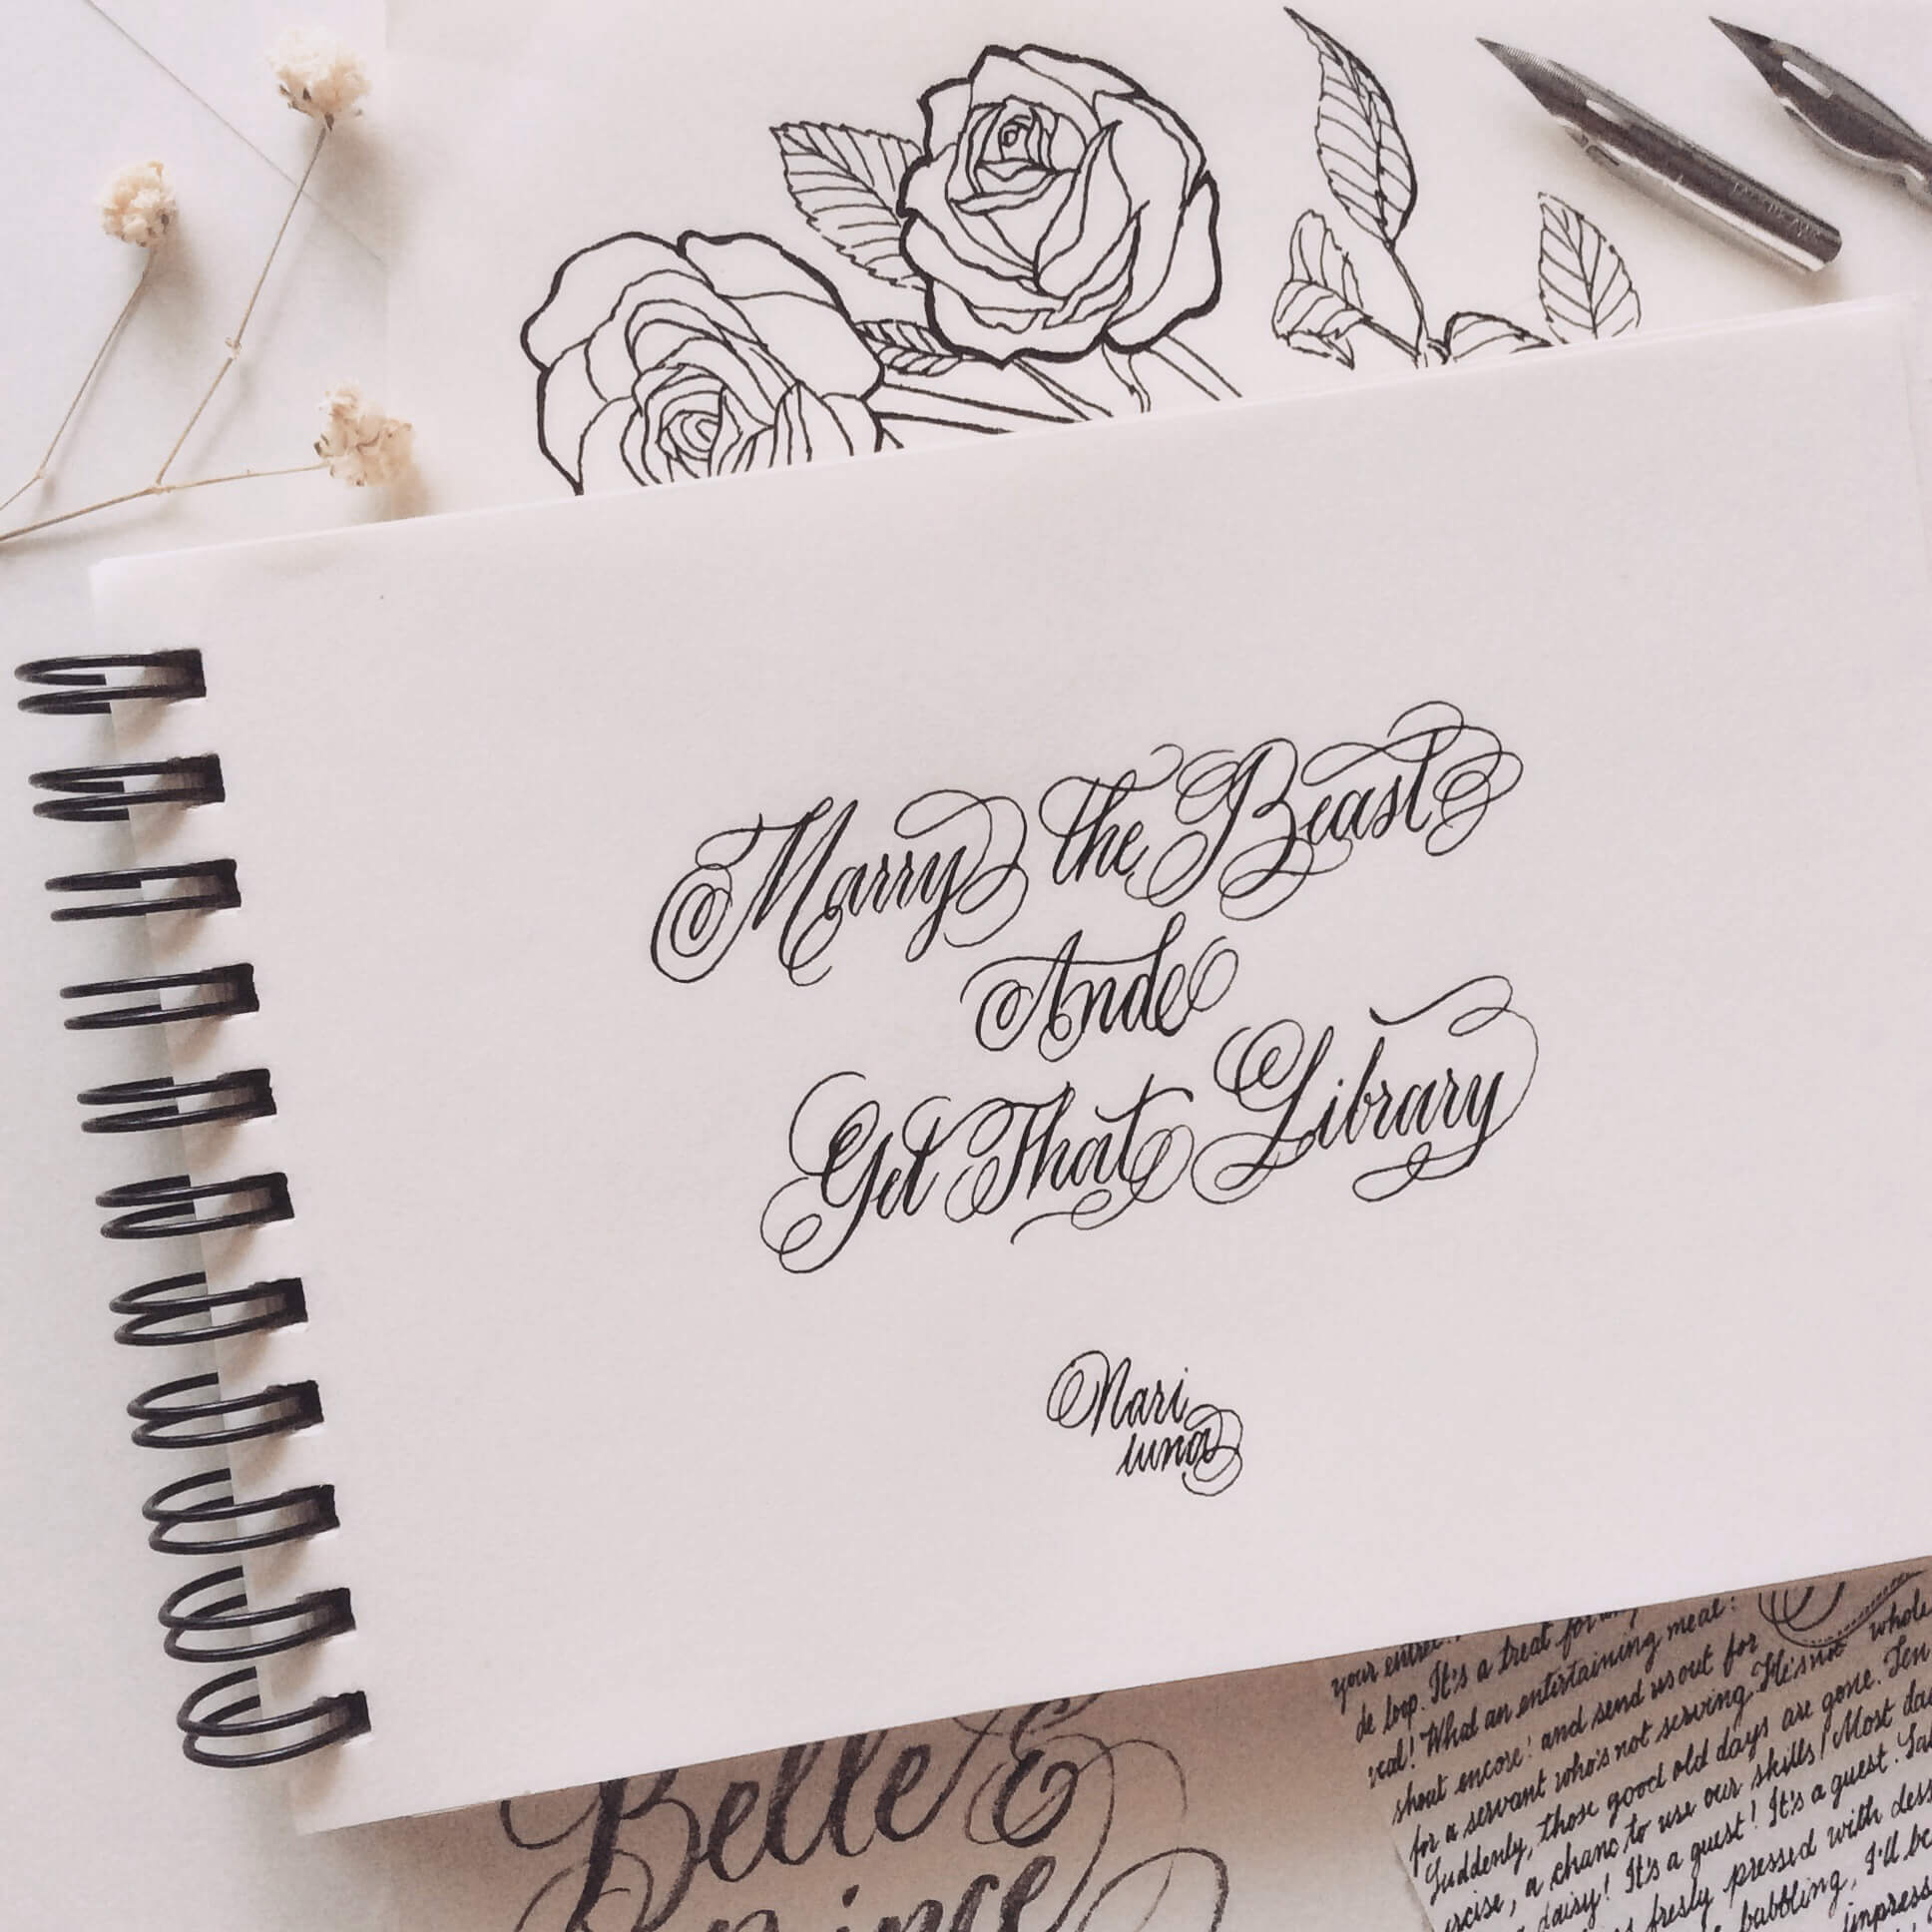 Beautiful Calligraphy and Illustration by Nari Luna — TypeRiot Spotlight